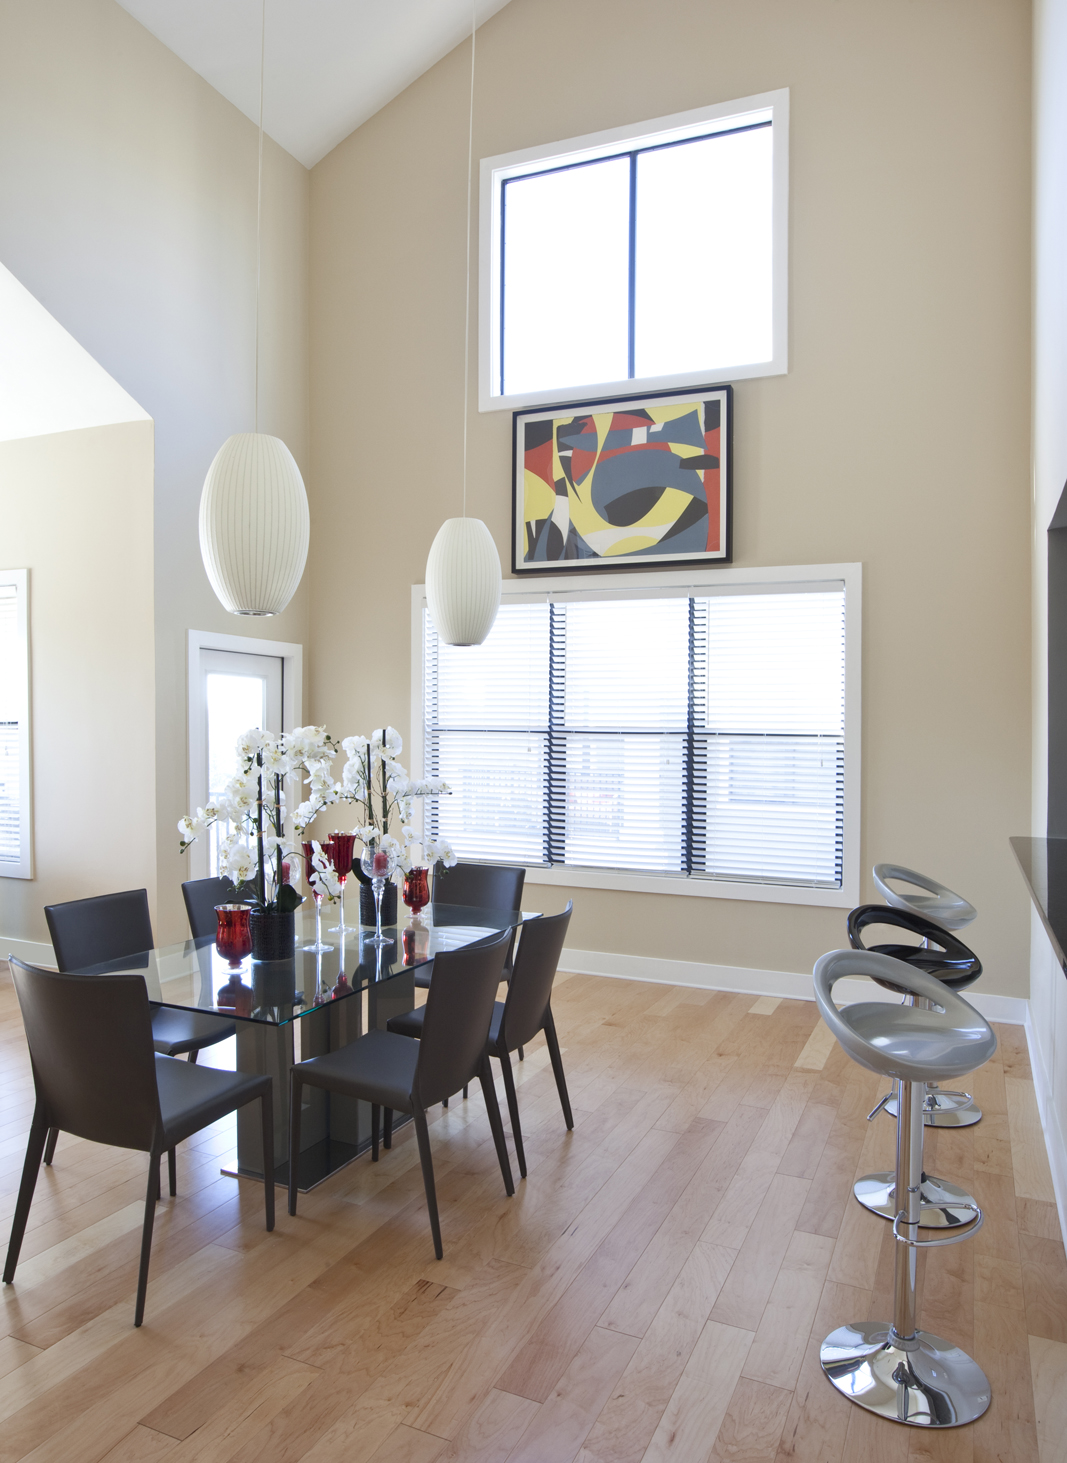 Modern dining room designed by Robin LaMonte of Rooms Revamped Interior Design